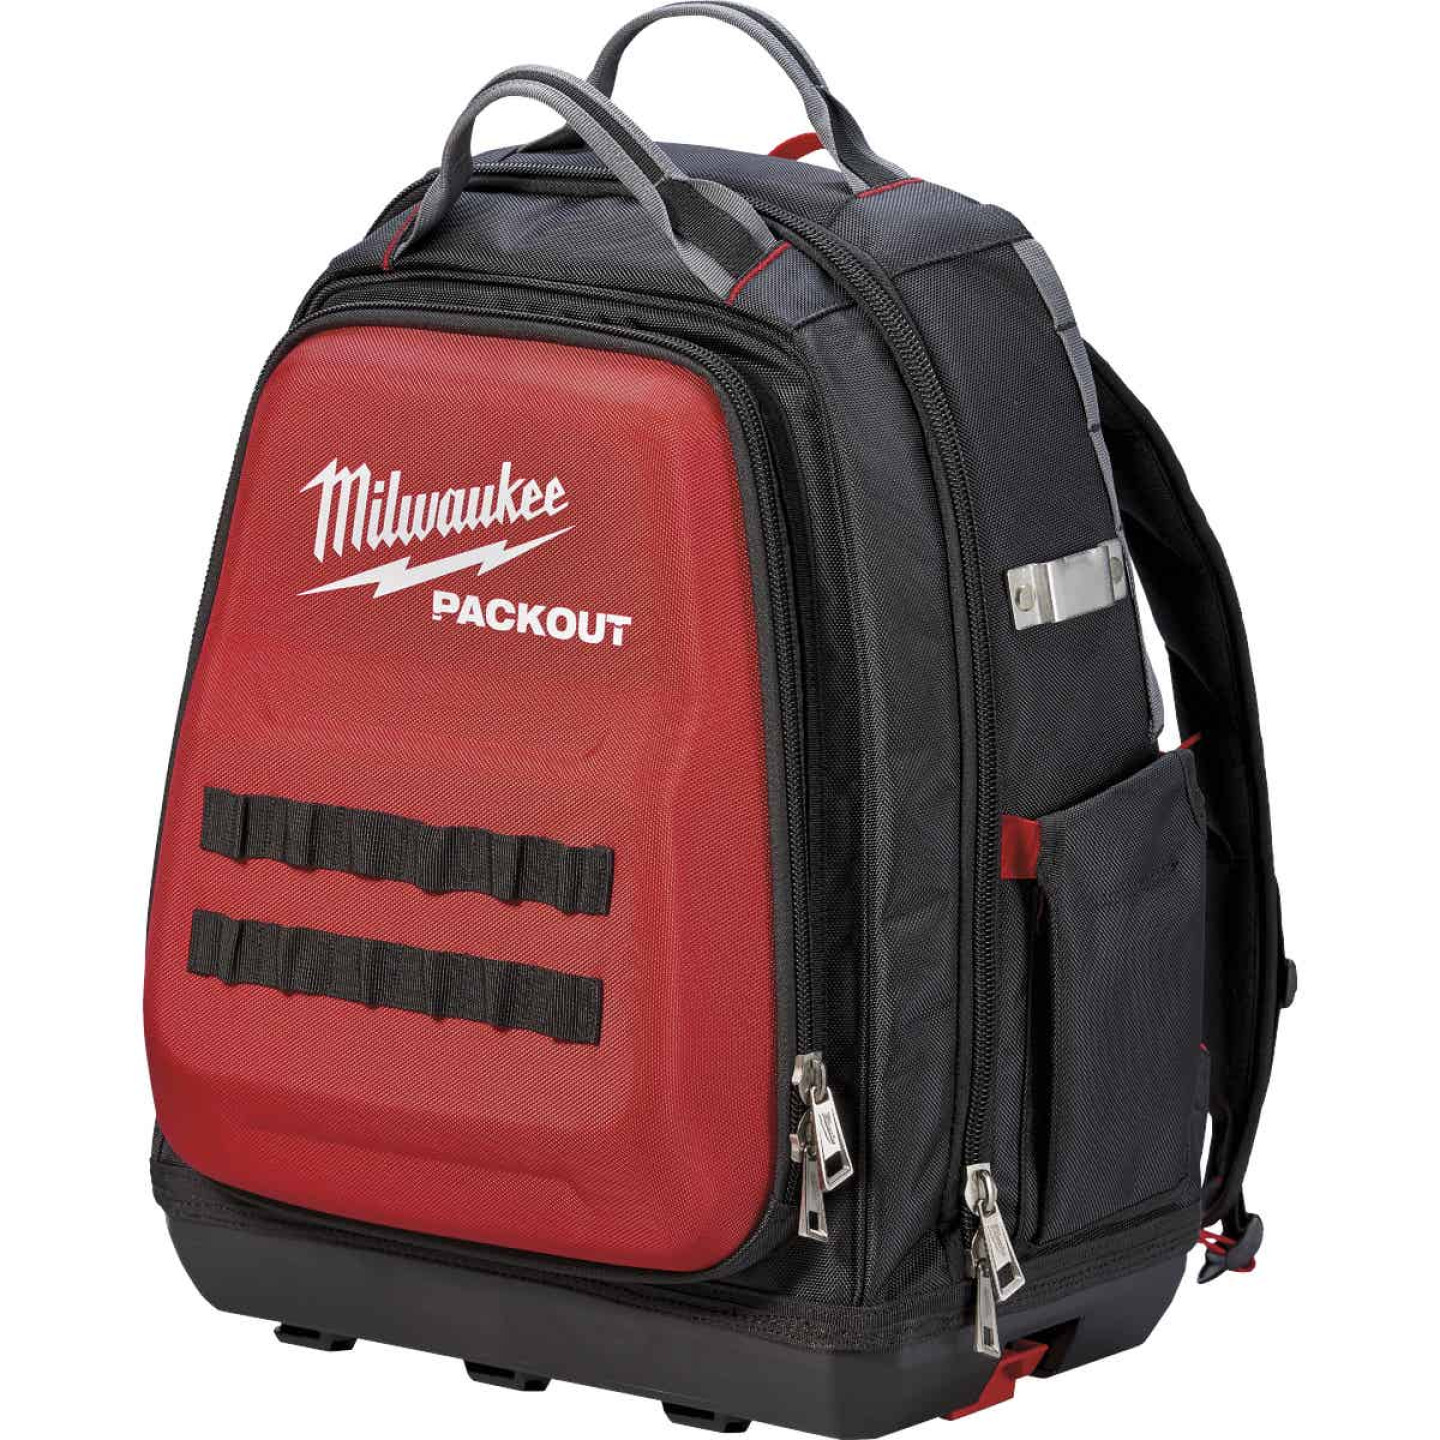 Milwaukee PACKOUT 48-Pocket 16 In. Backpack Toolbag Image 1